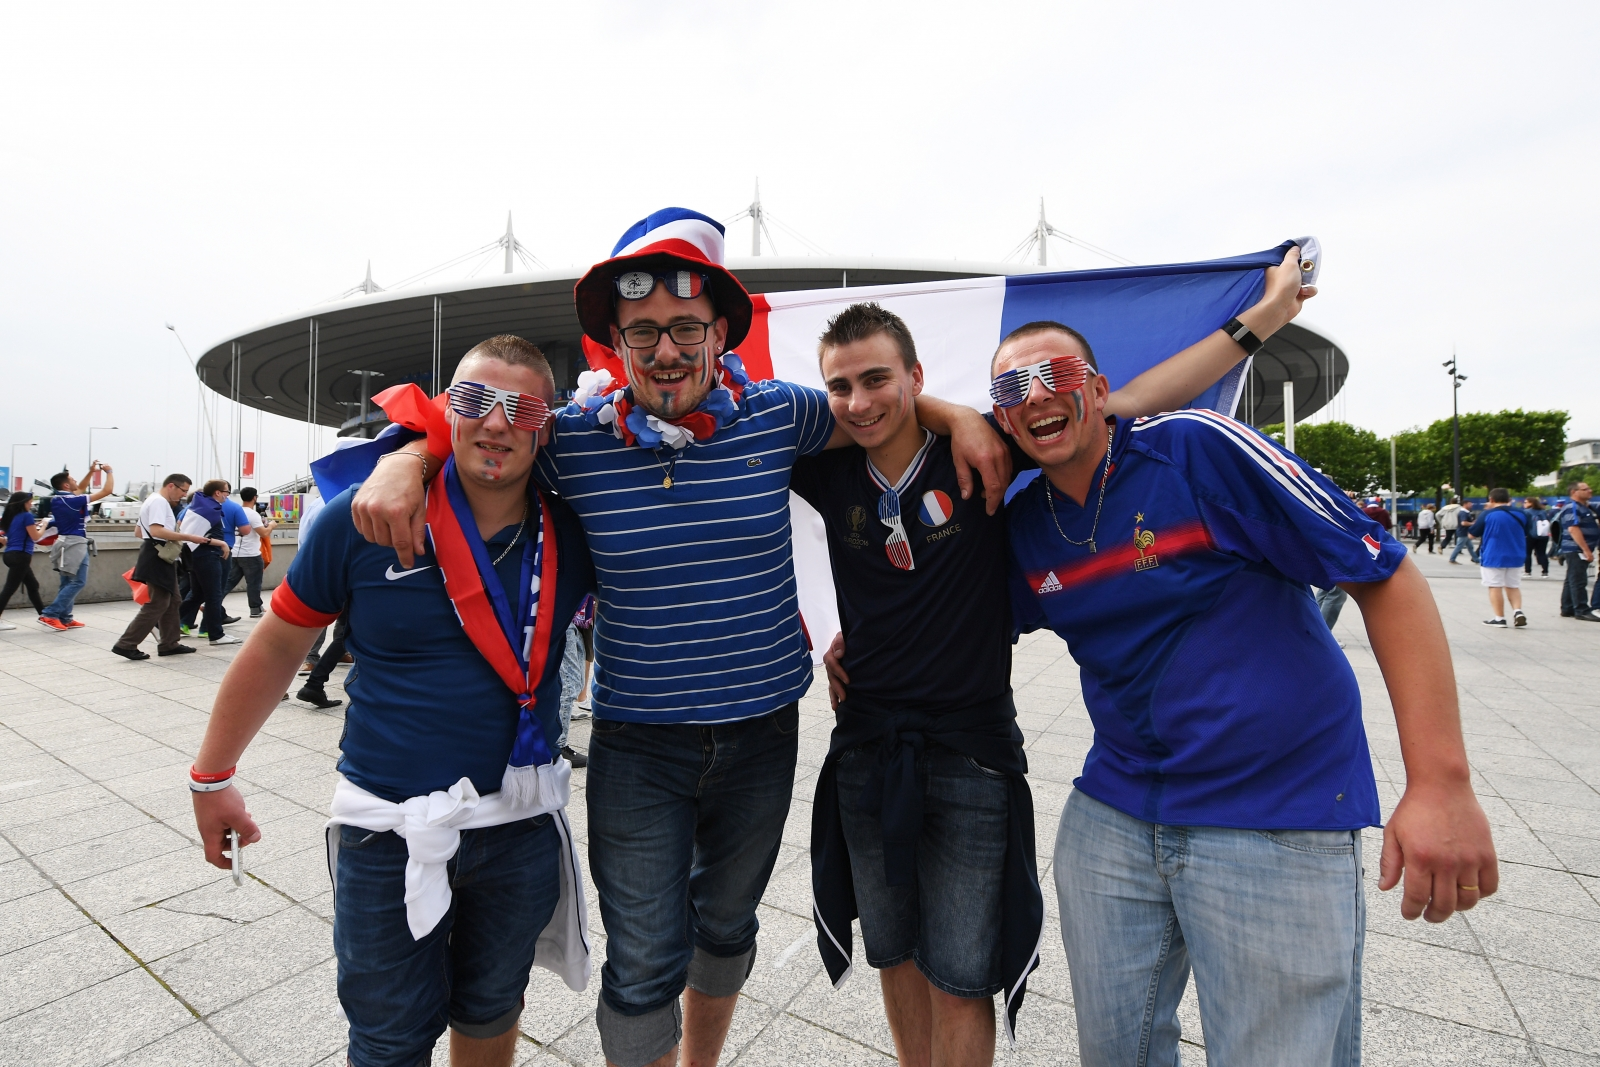 France fans before the game in Paris